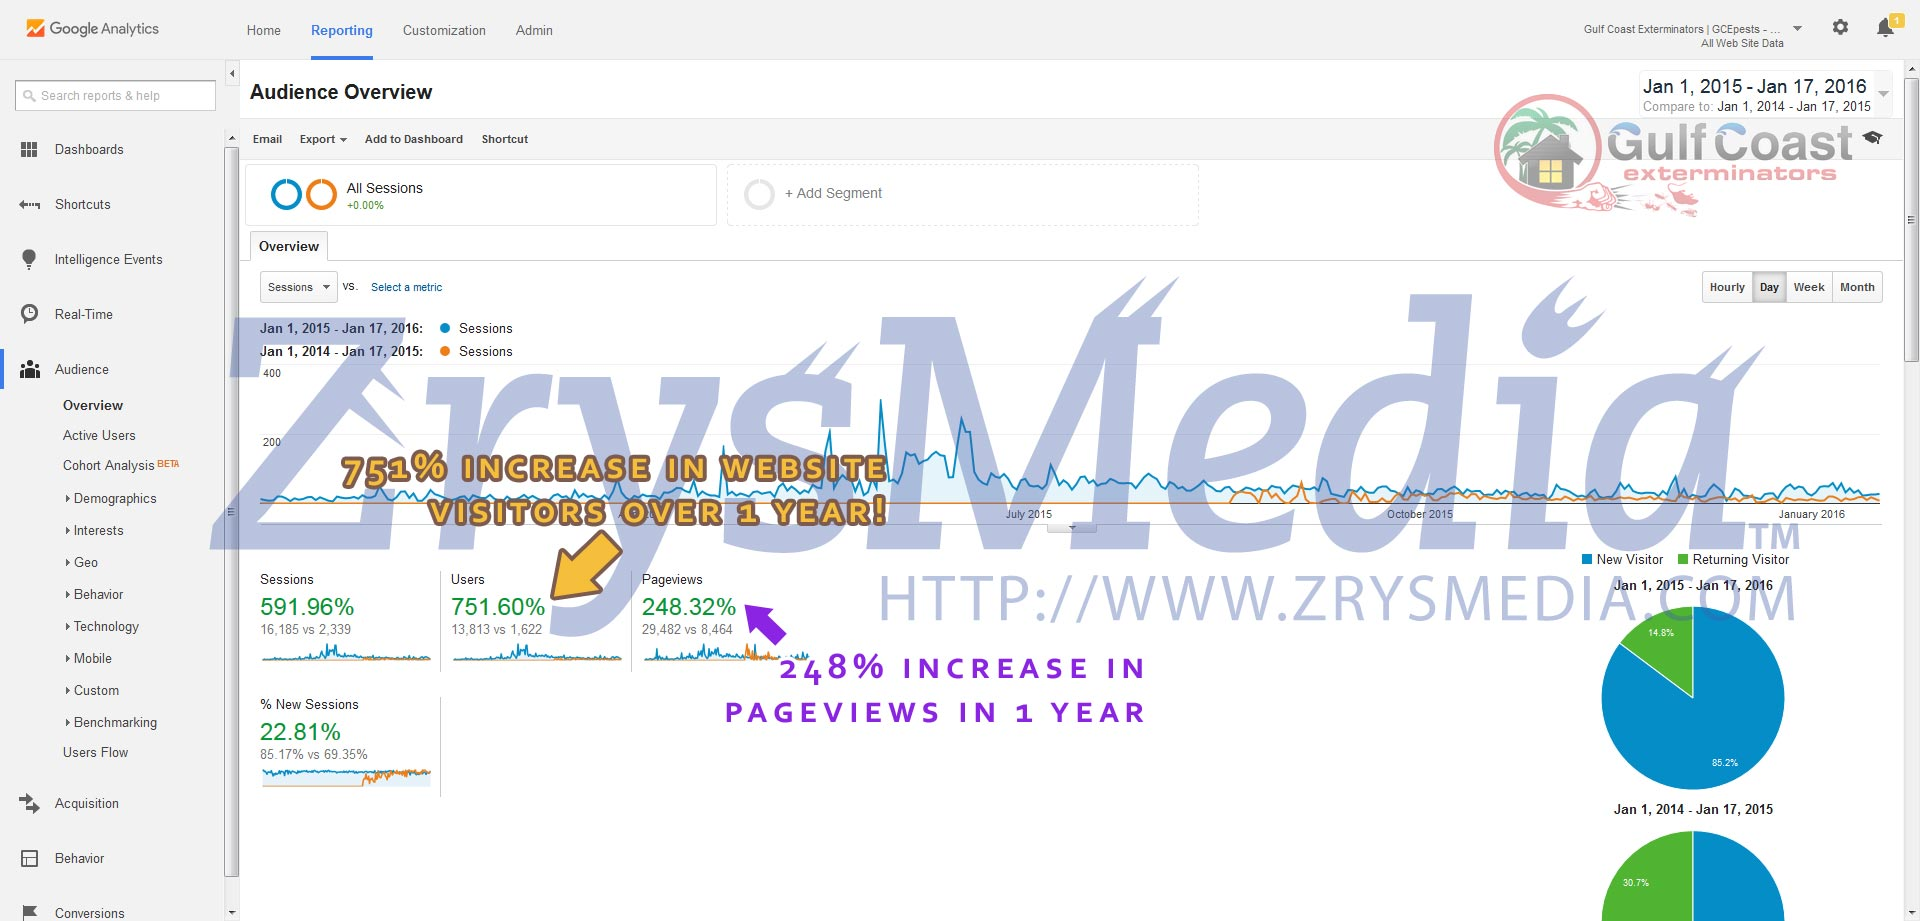 Gulf Coast Exterminators increased website traffic results from working with ZrysMedia within a year